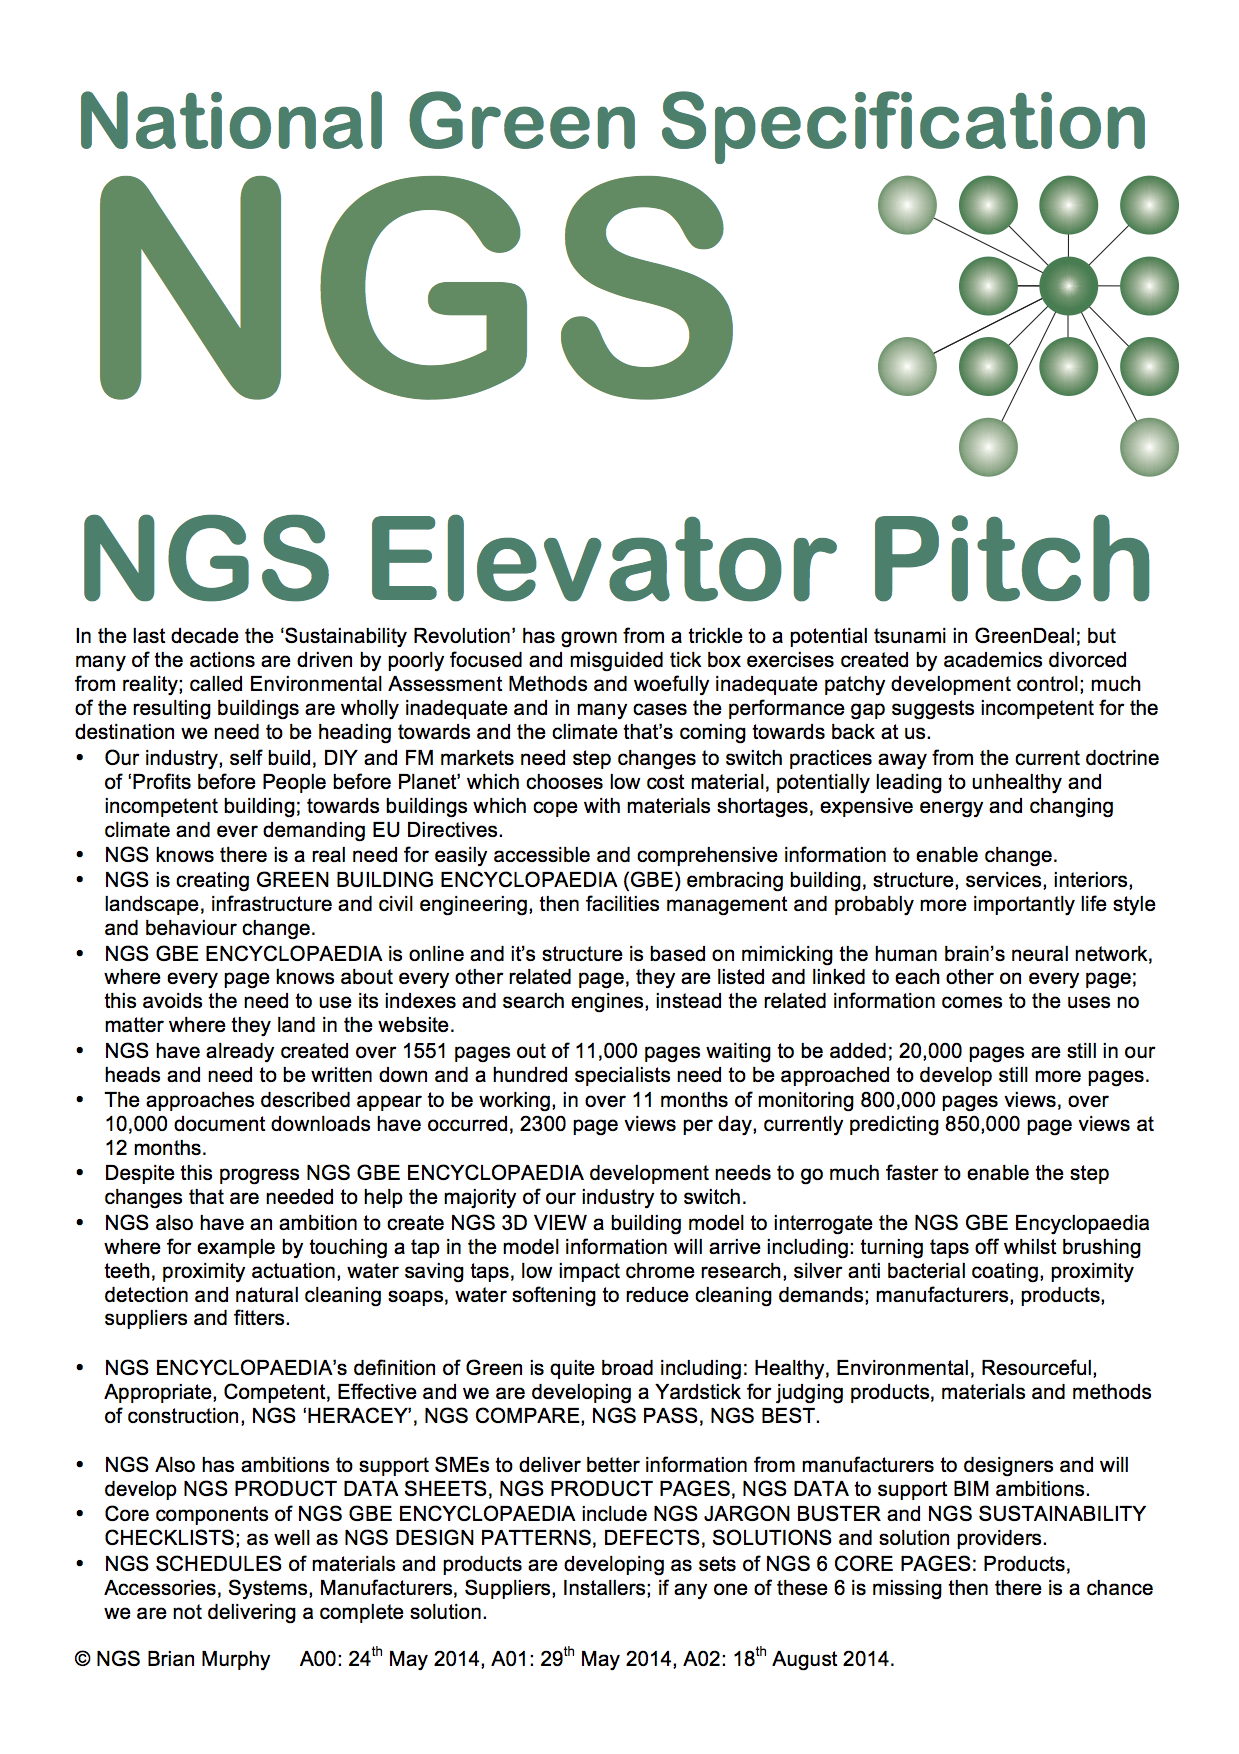 NGS Elevator Pitch A02 BRM 180814 png